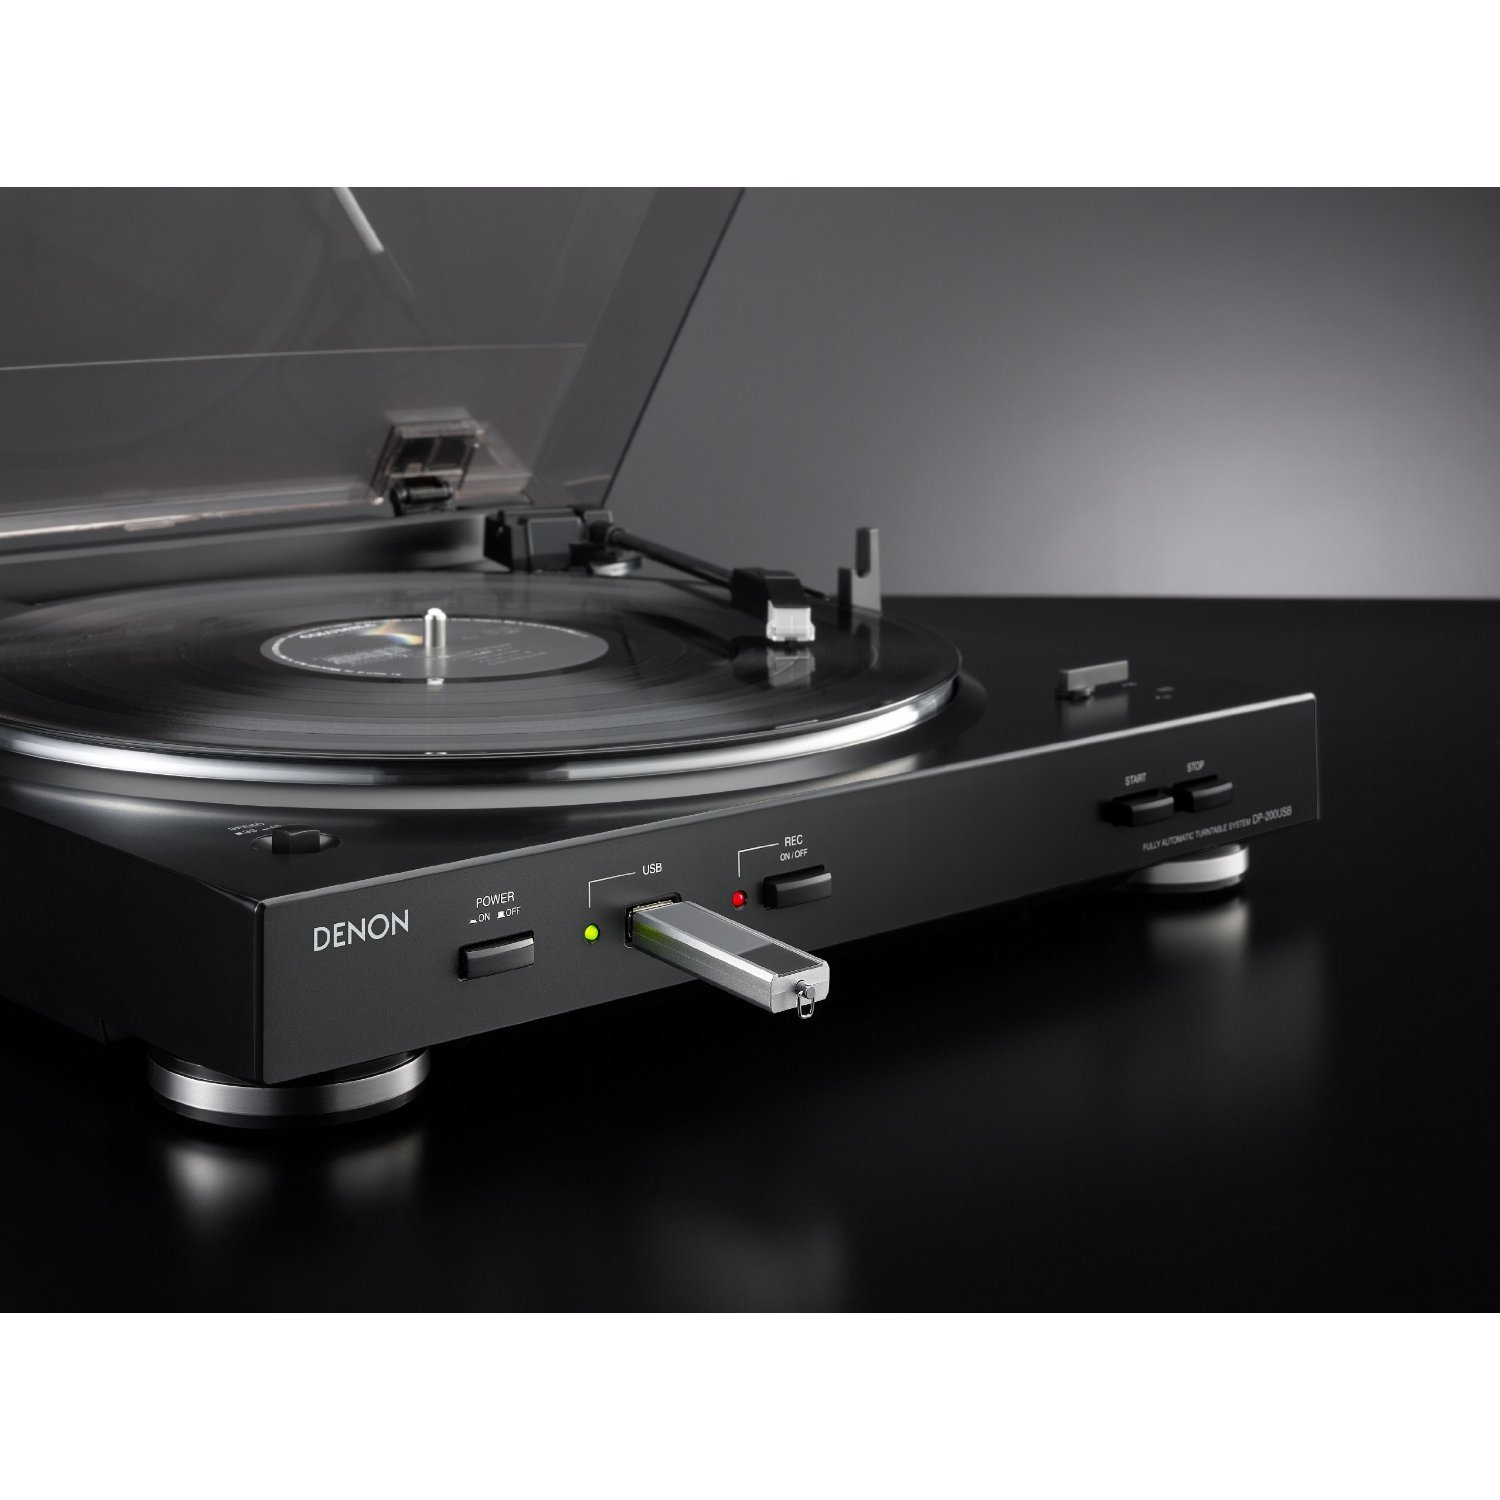 Amazon.com: Denon DP-200USB Fully Automatic Turntable with MP3 Encoder:  Home Audio & Theater